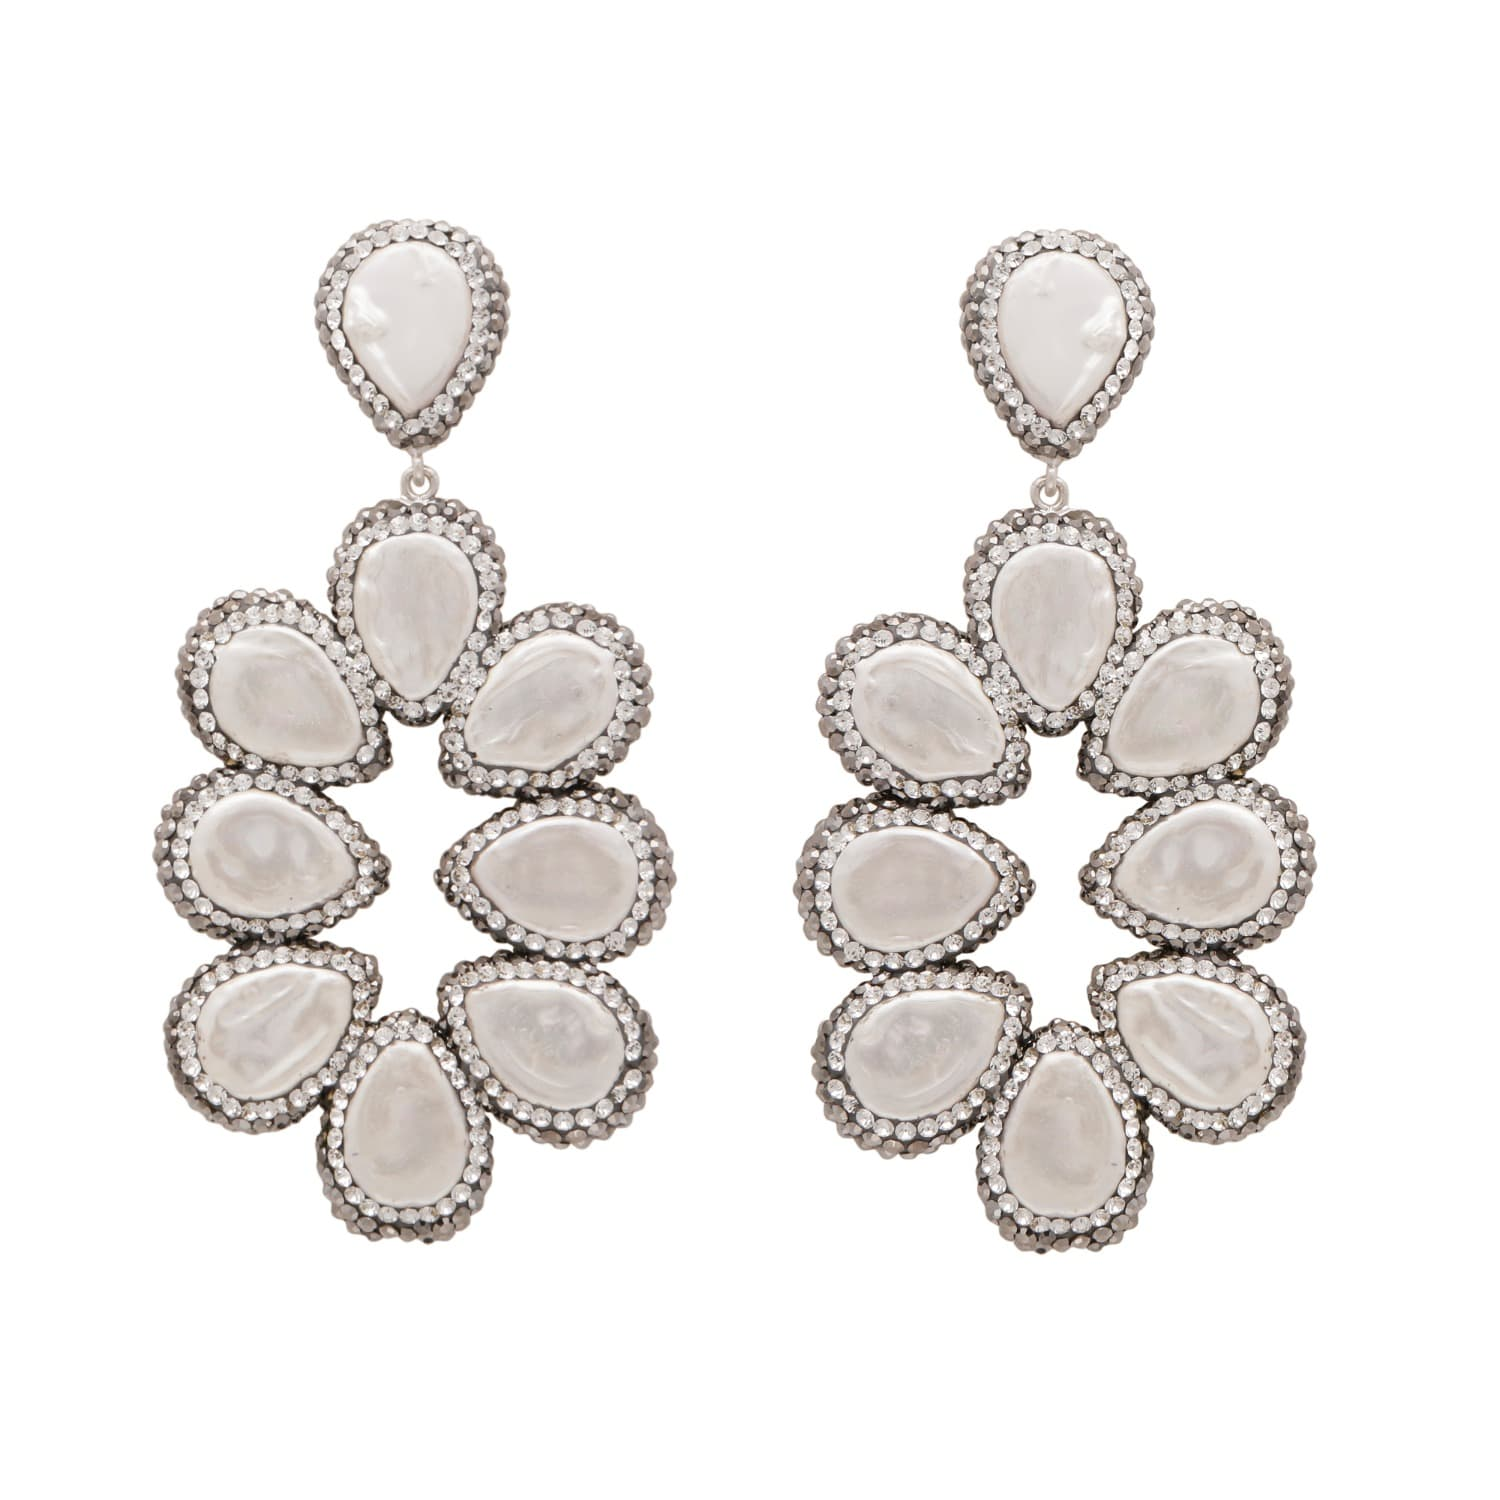 Mother of Pearl and Silver Statement Earrings by Carousel Jewels